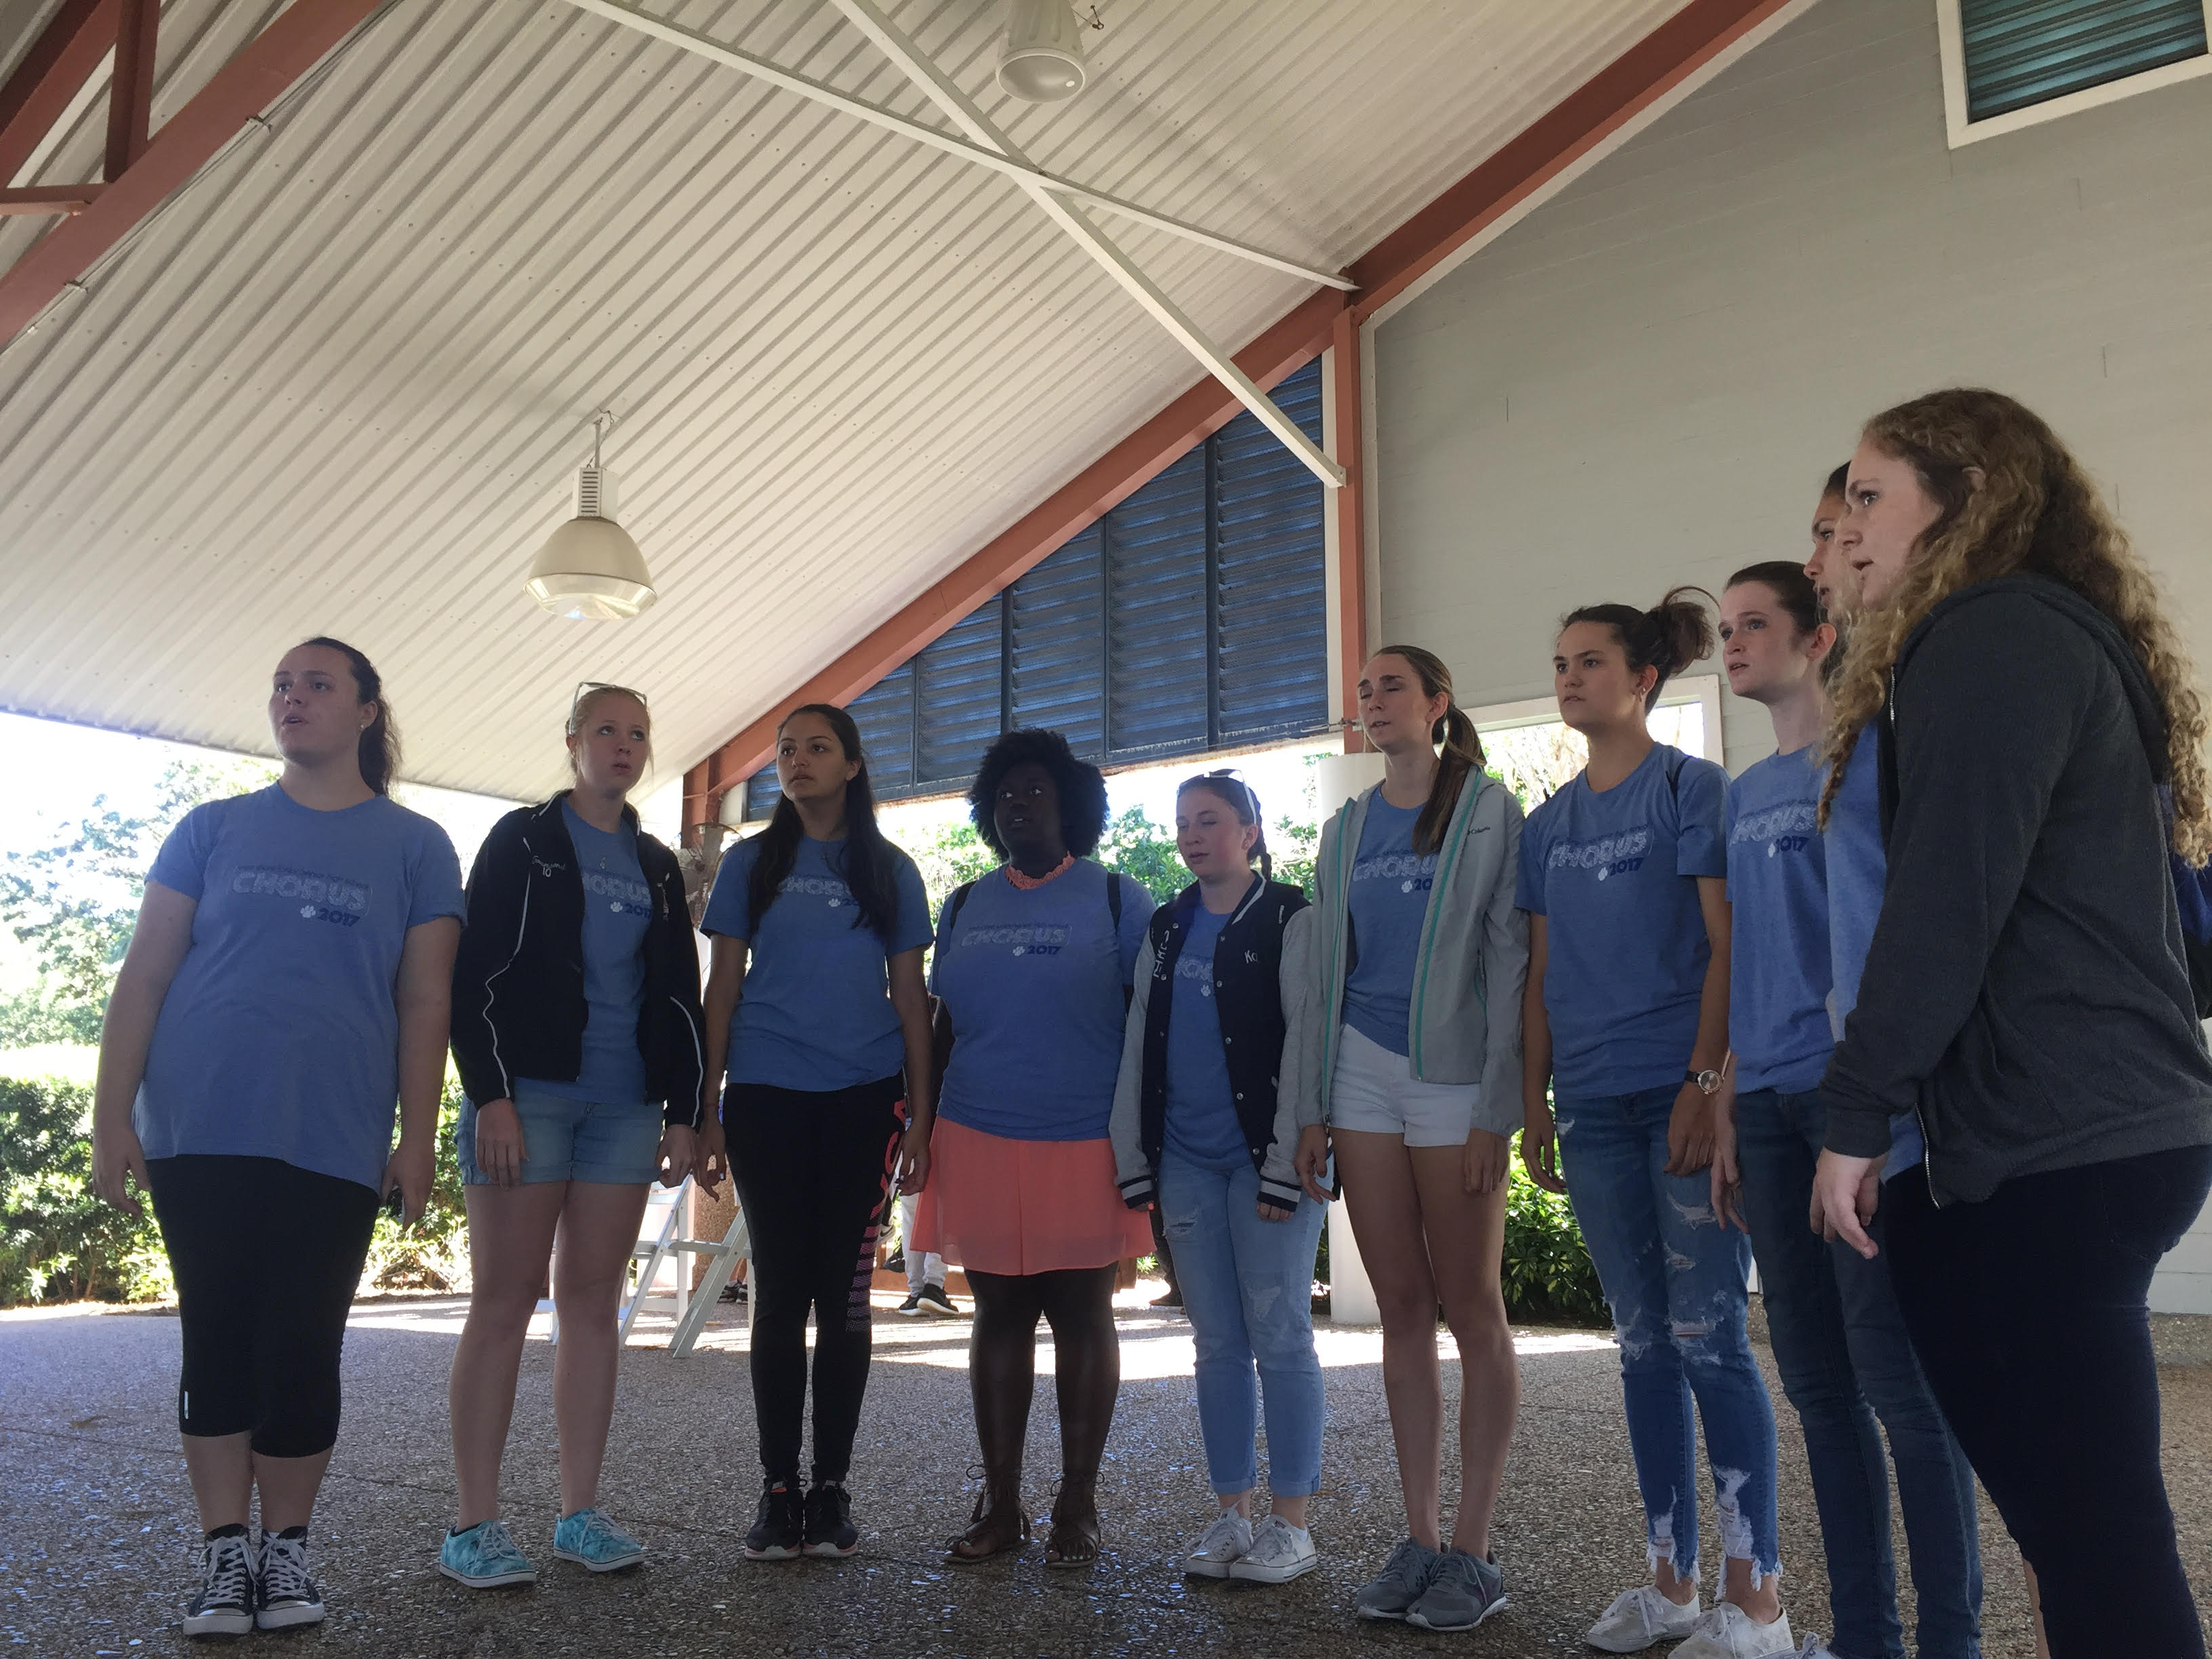 Women's chorus sings at Seaworld.